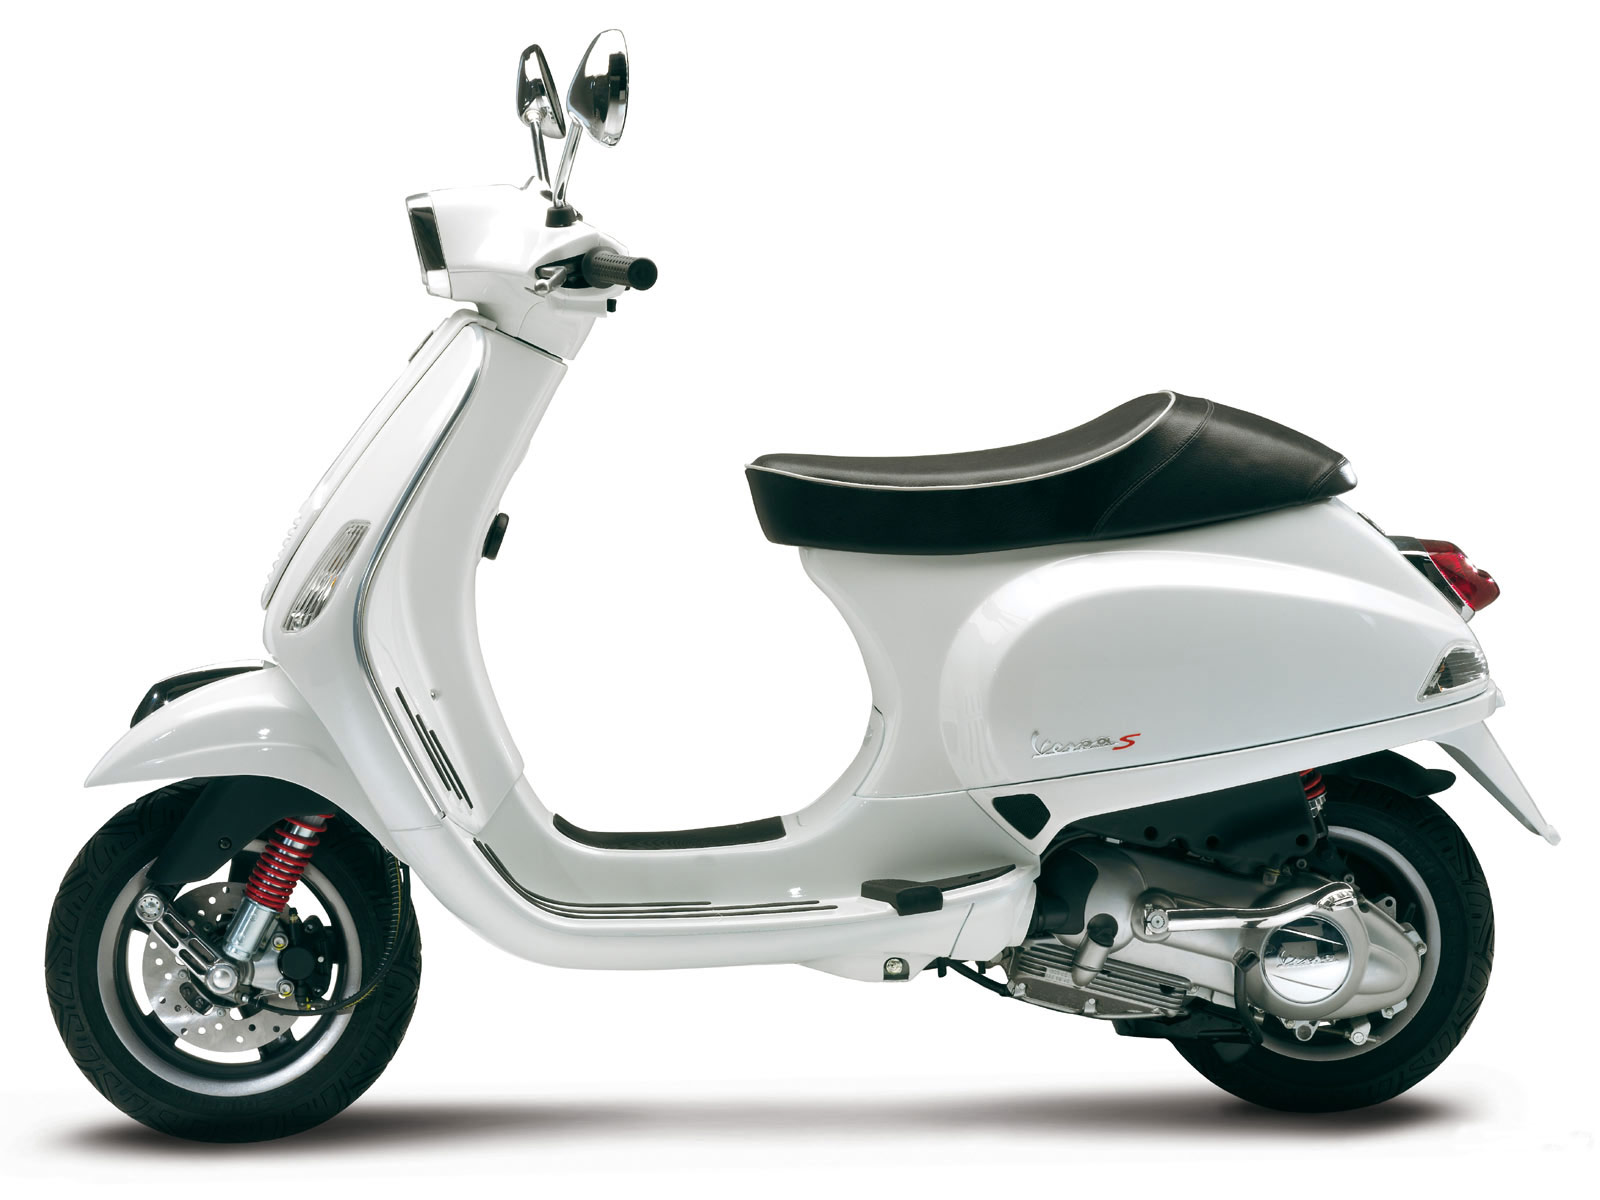 called the vespa s it s based on the existing 50cc and 125cc lx models  title=